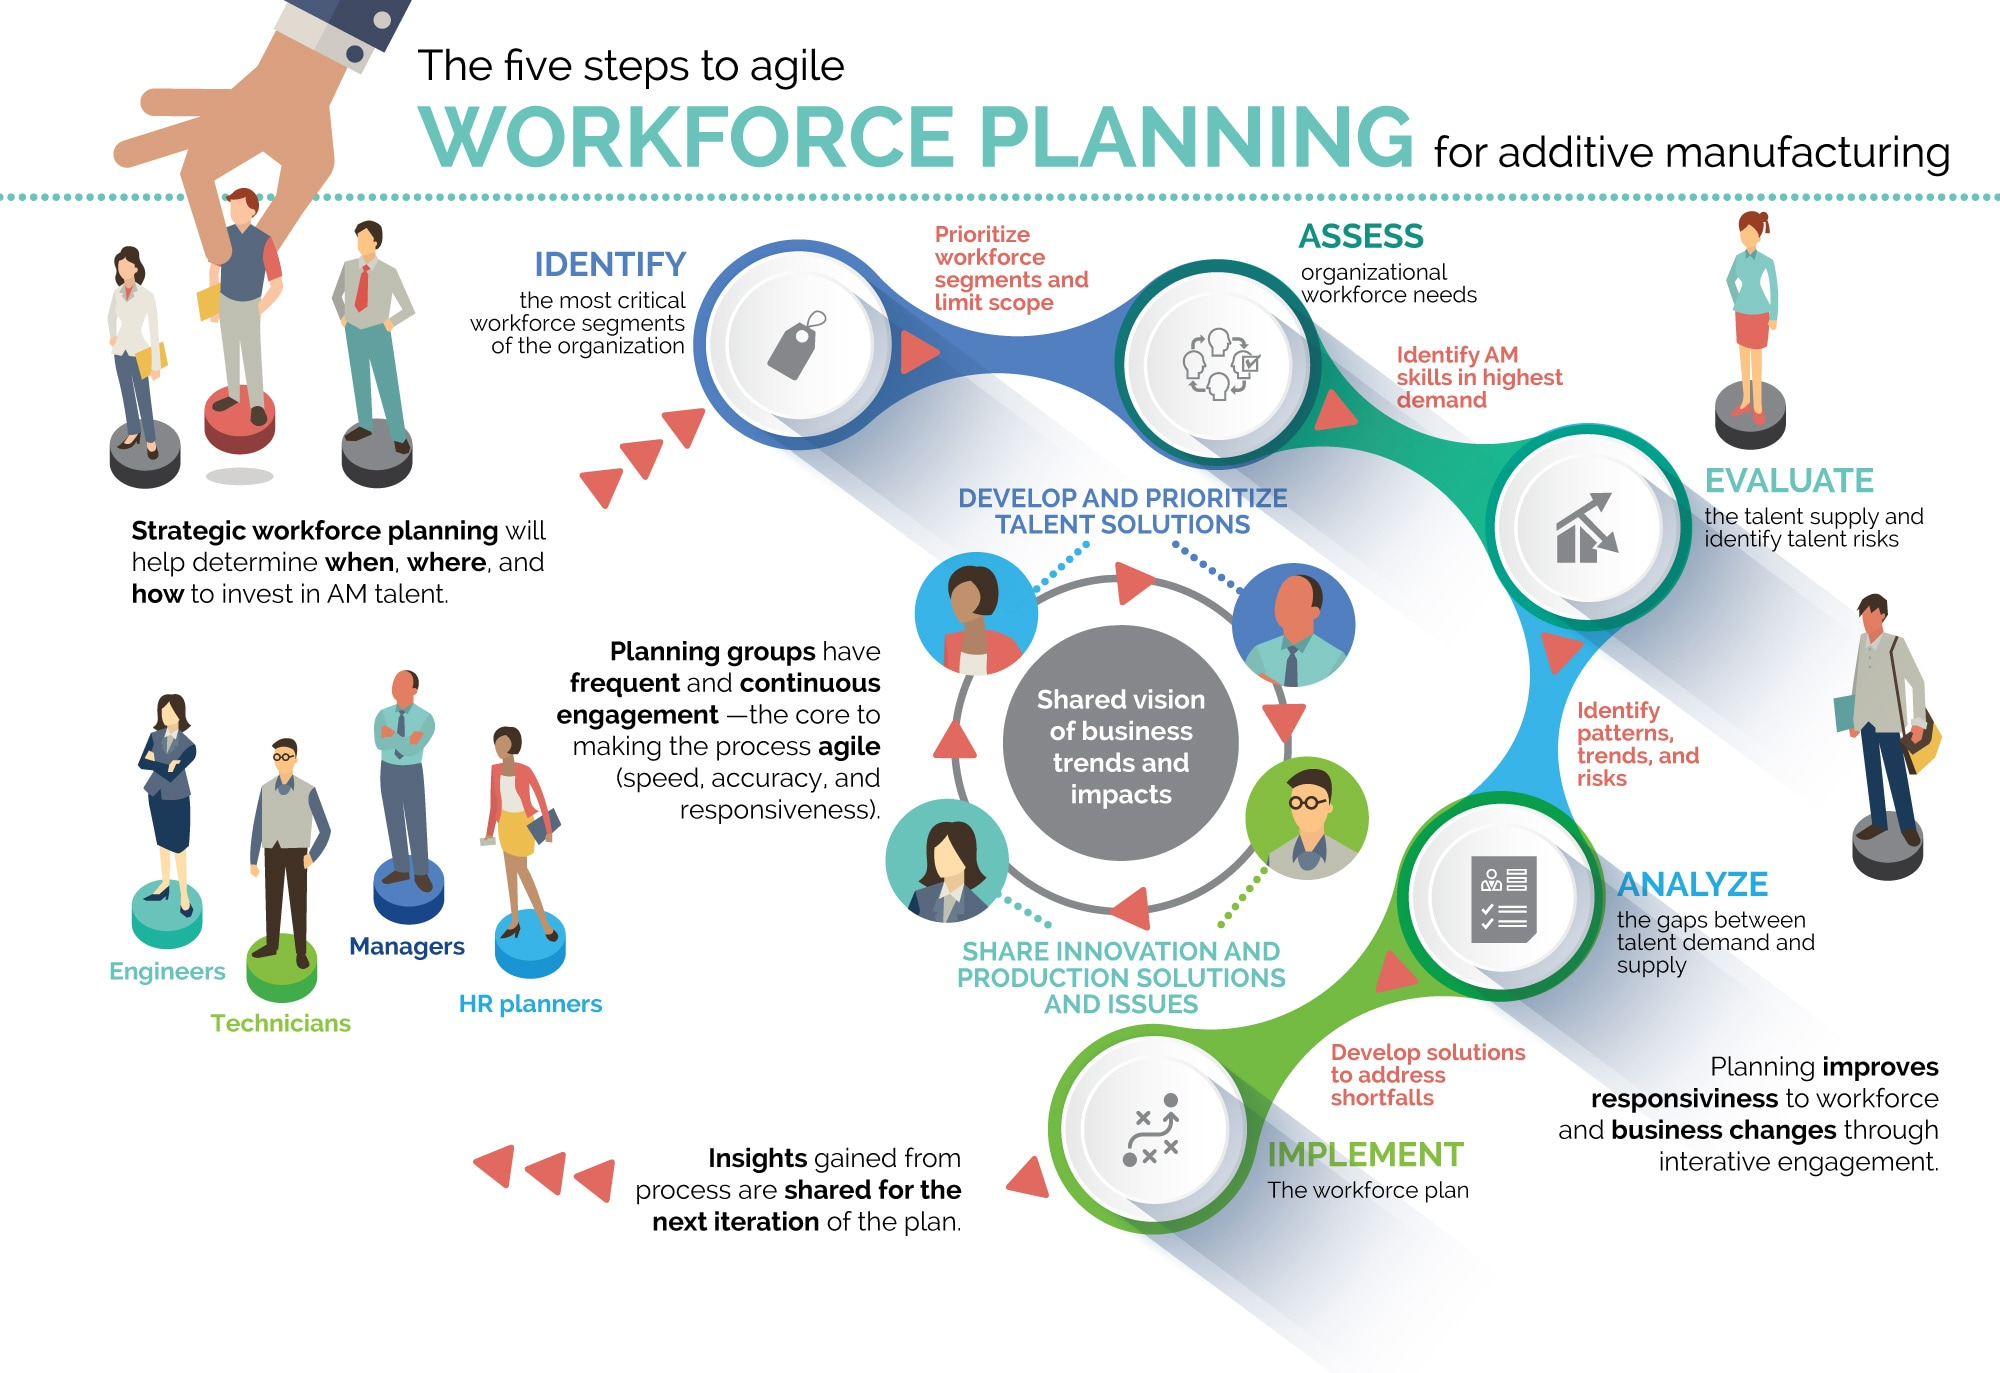 DUP-3062_Figure 2. Planning the agile workforce